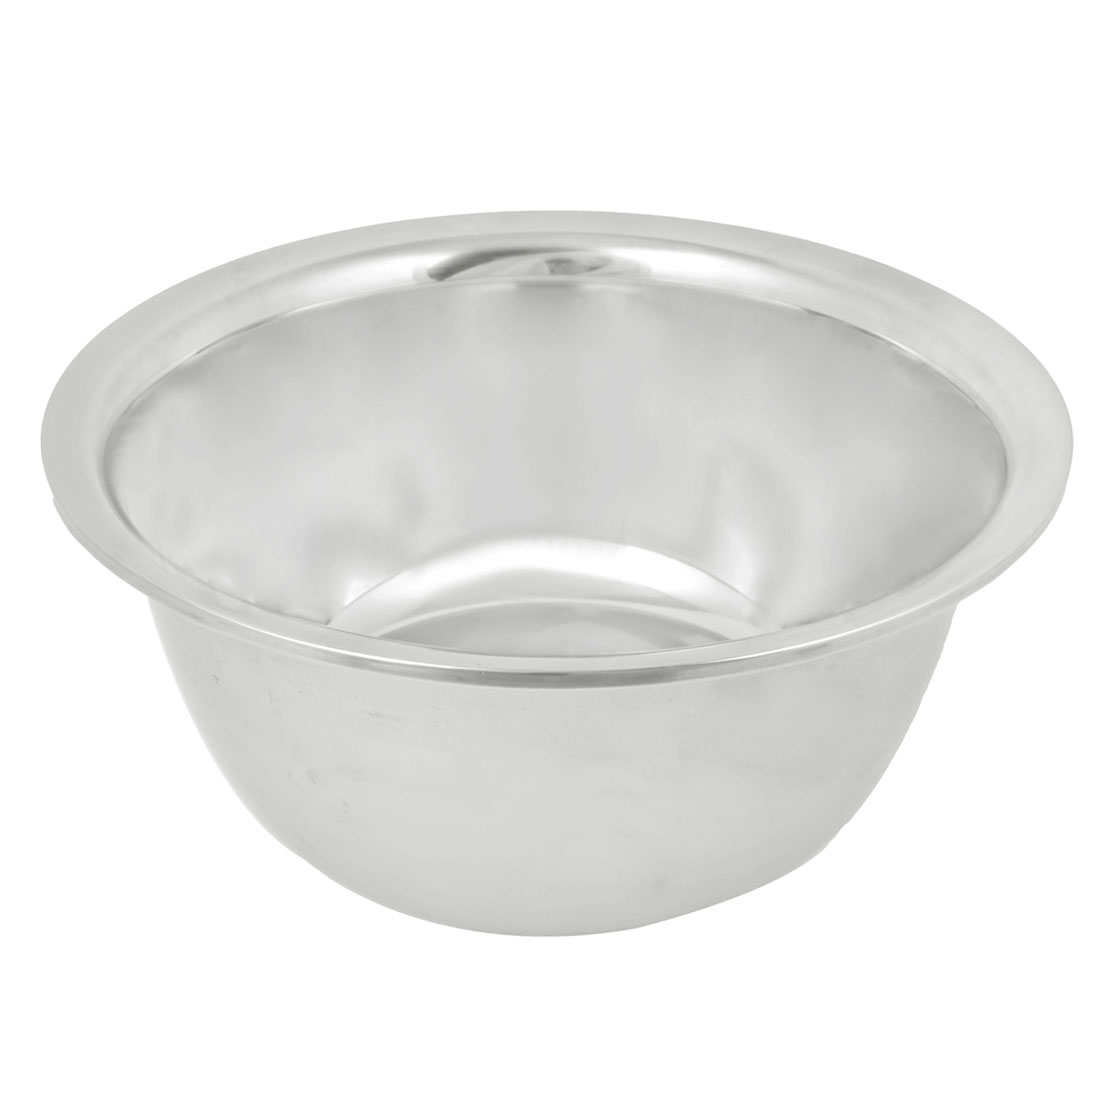 "Household Multifunction Round Stainless Steel 5.9"" Bottom Diameter Dinner Bowl Storage Basin"